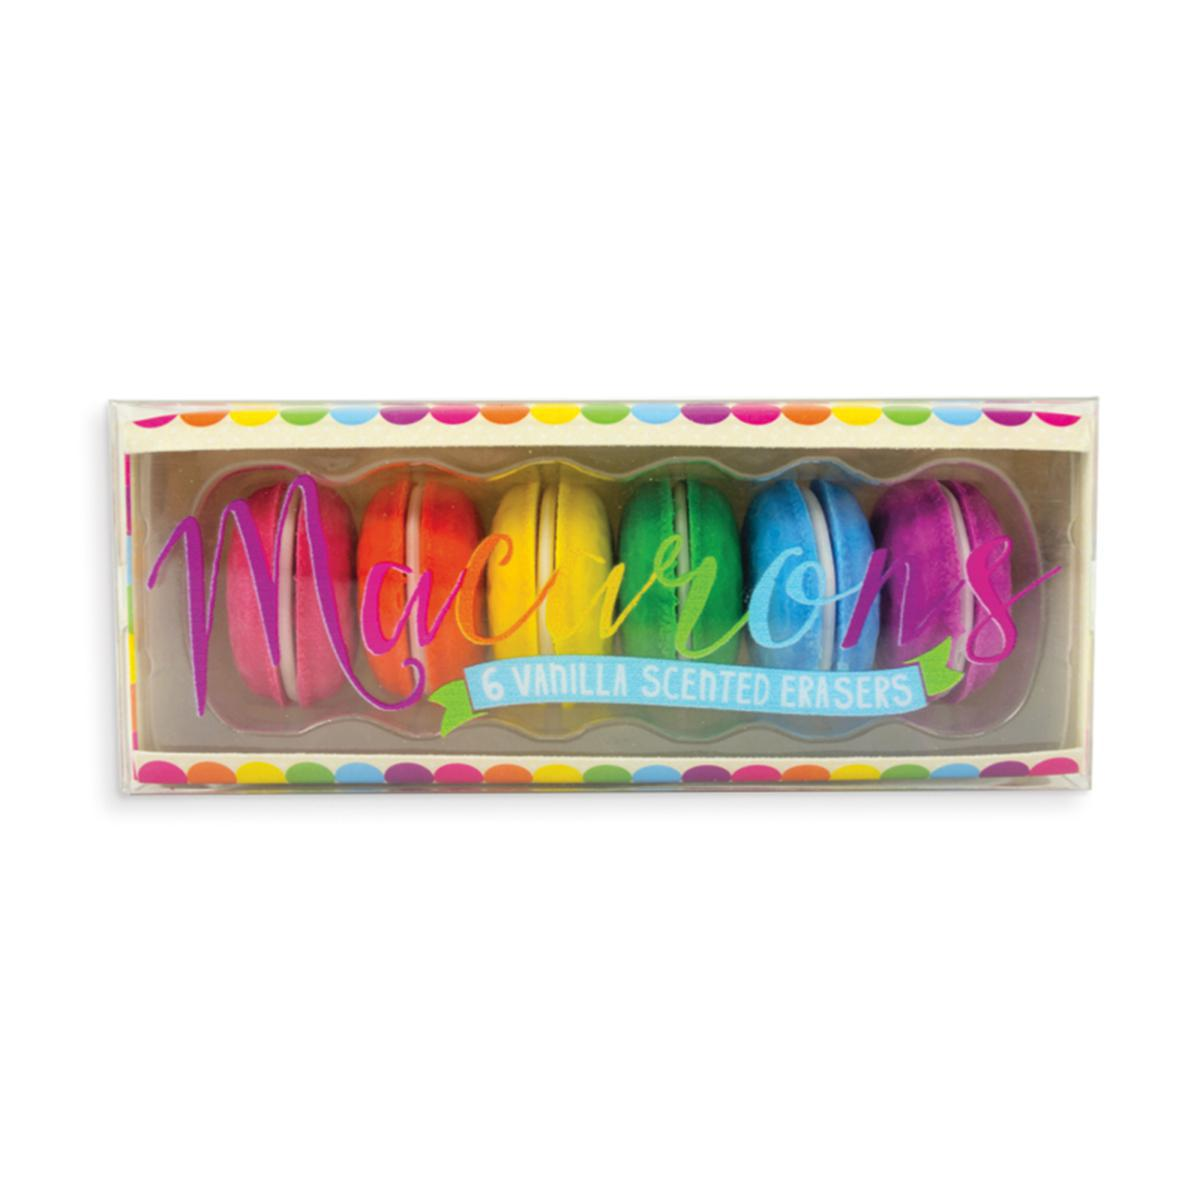 Macaron Scented Erasers